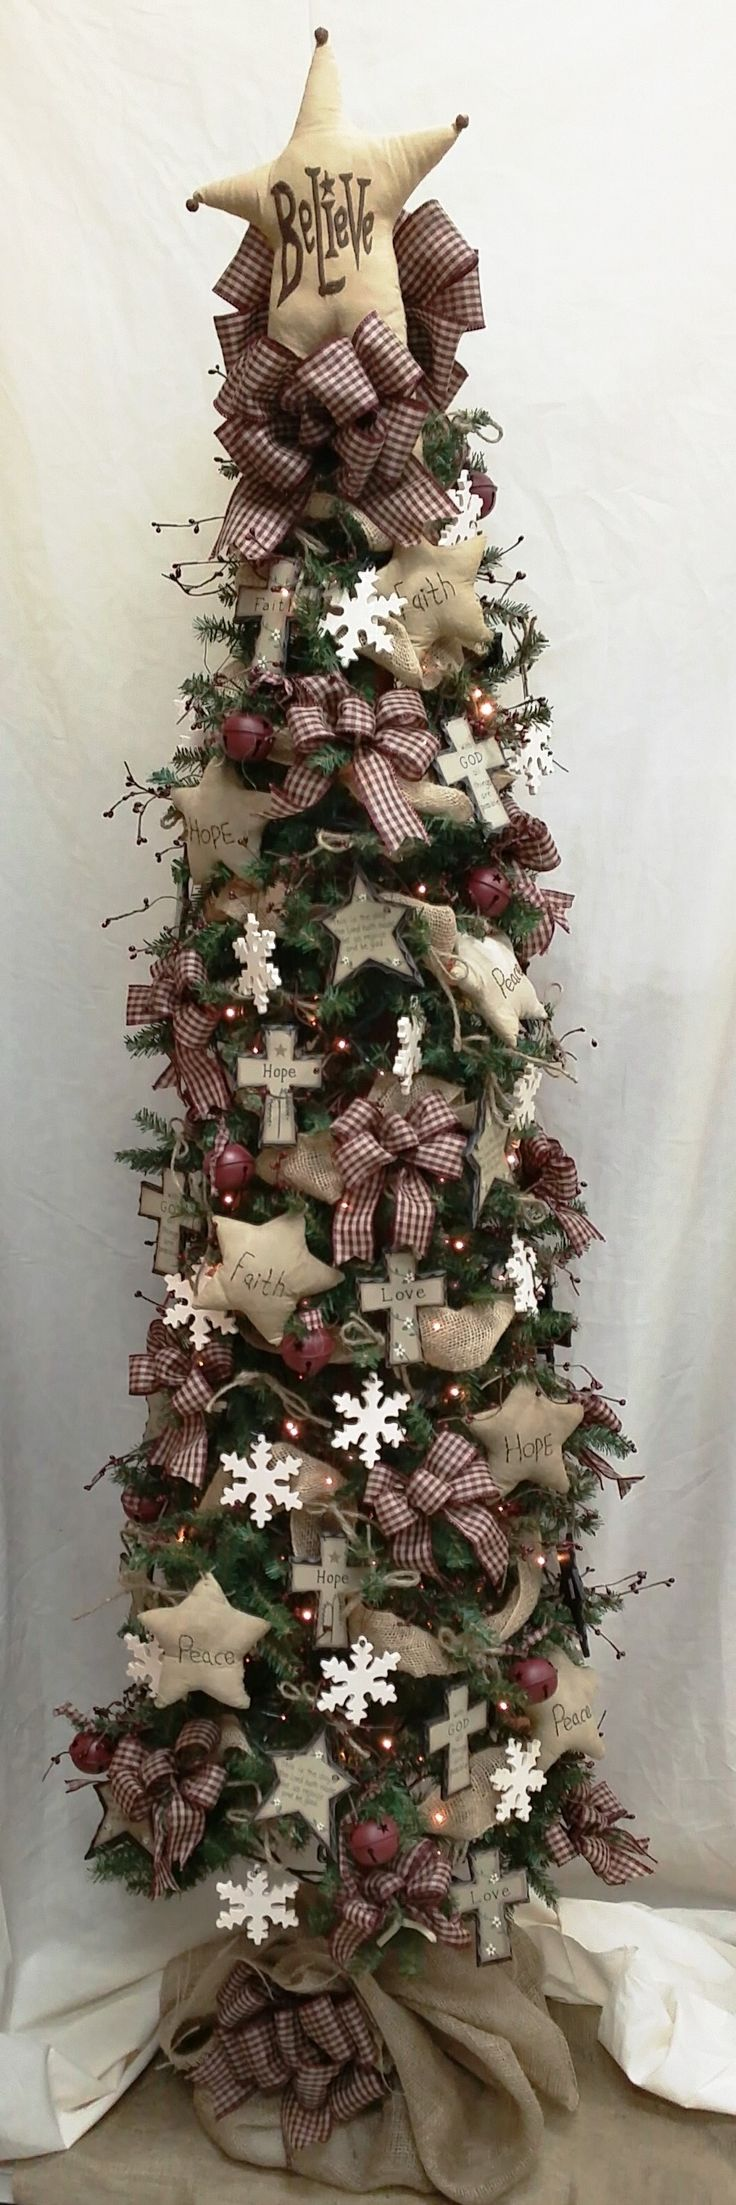 Christmas window box filler - Get Into The Christmas Season With Our Unique Primitive Star Christmas Tree Love The Country